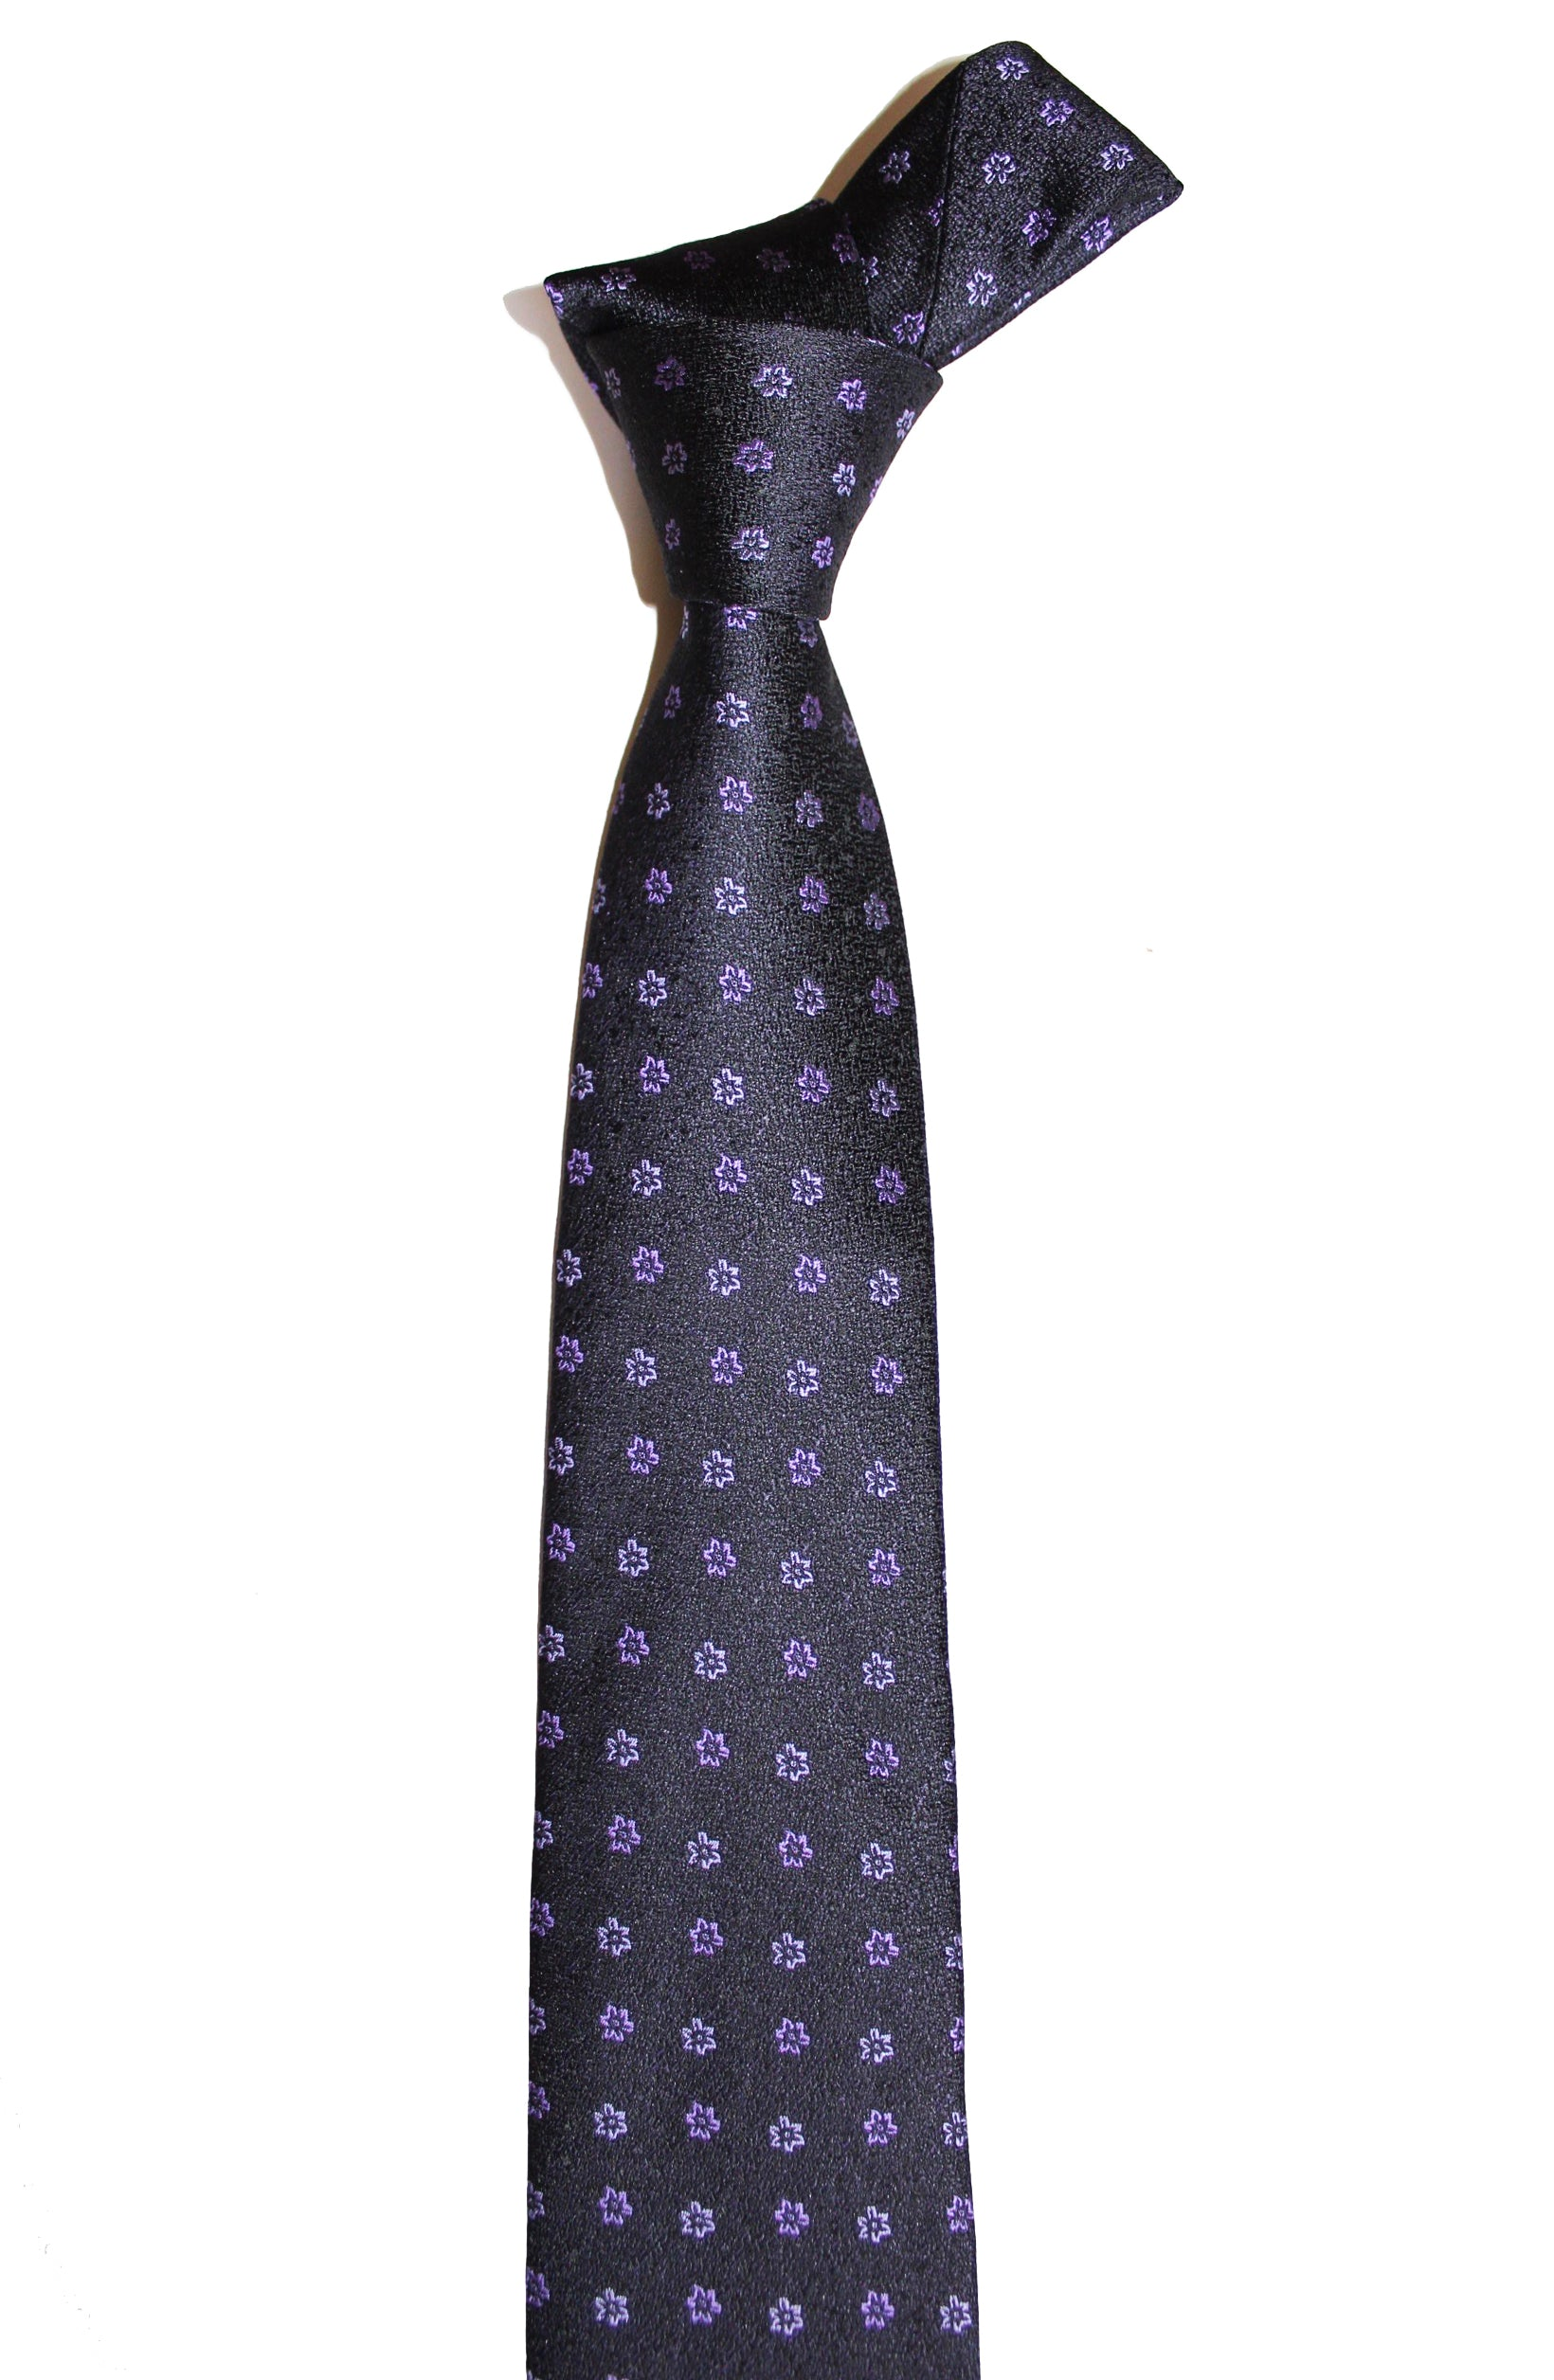 Ying Cai Norrian Tie /Black 2